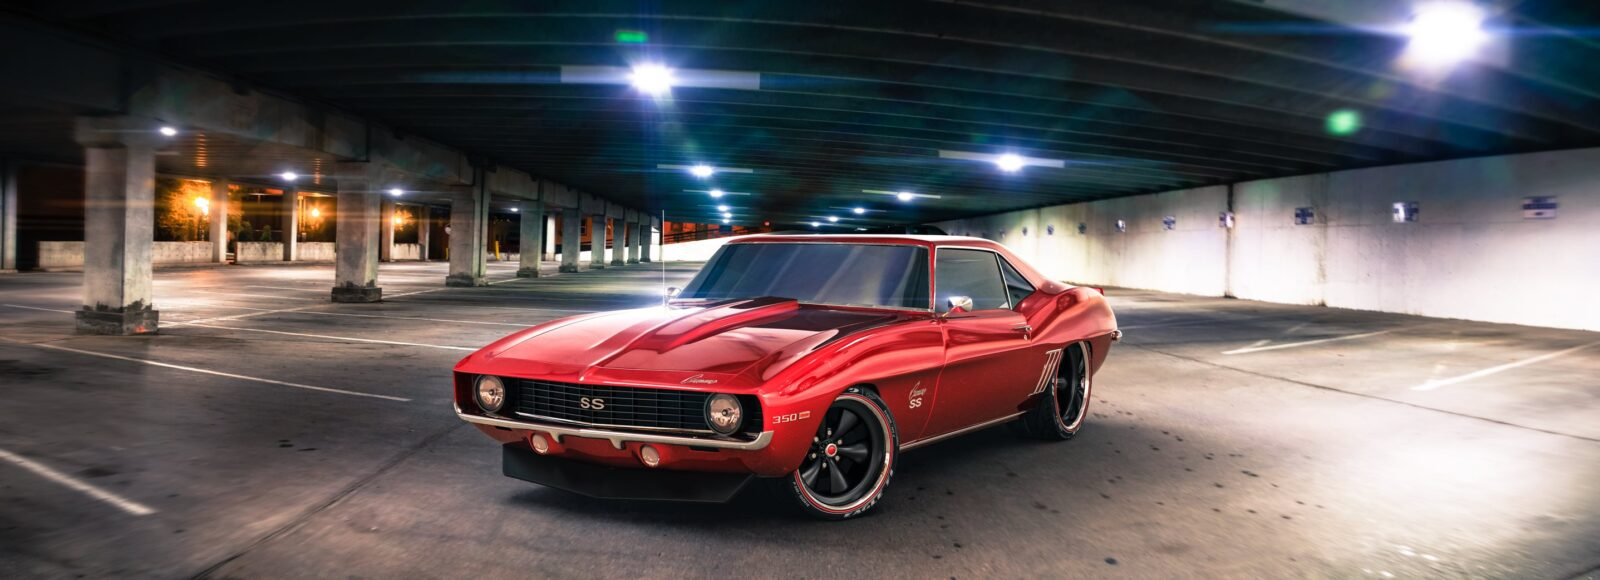 1969 Camaro Ss Wallpaper >> 36+ Chevrolet Camaro SS 1969 wallpapers HD